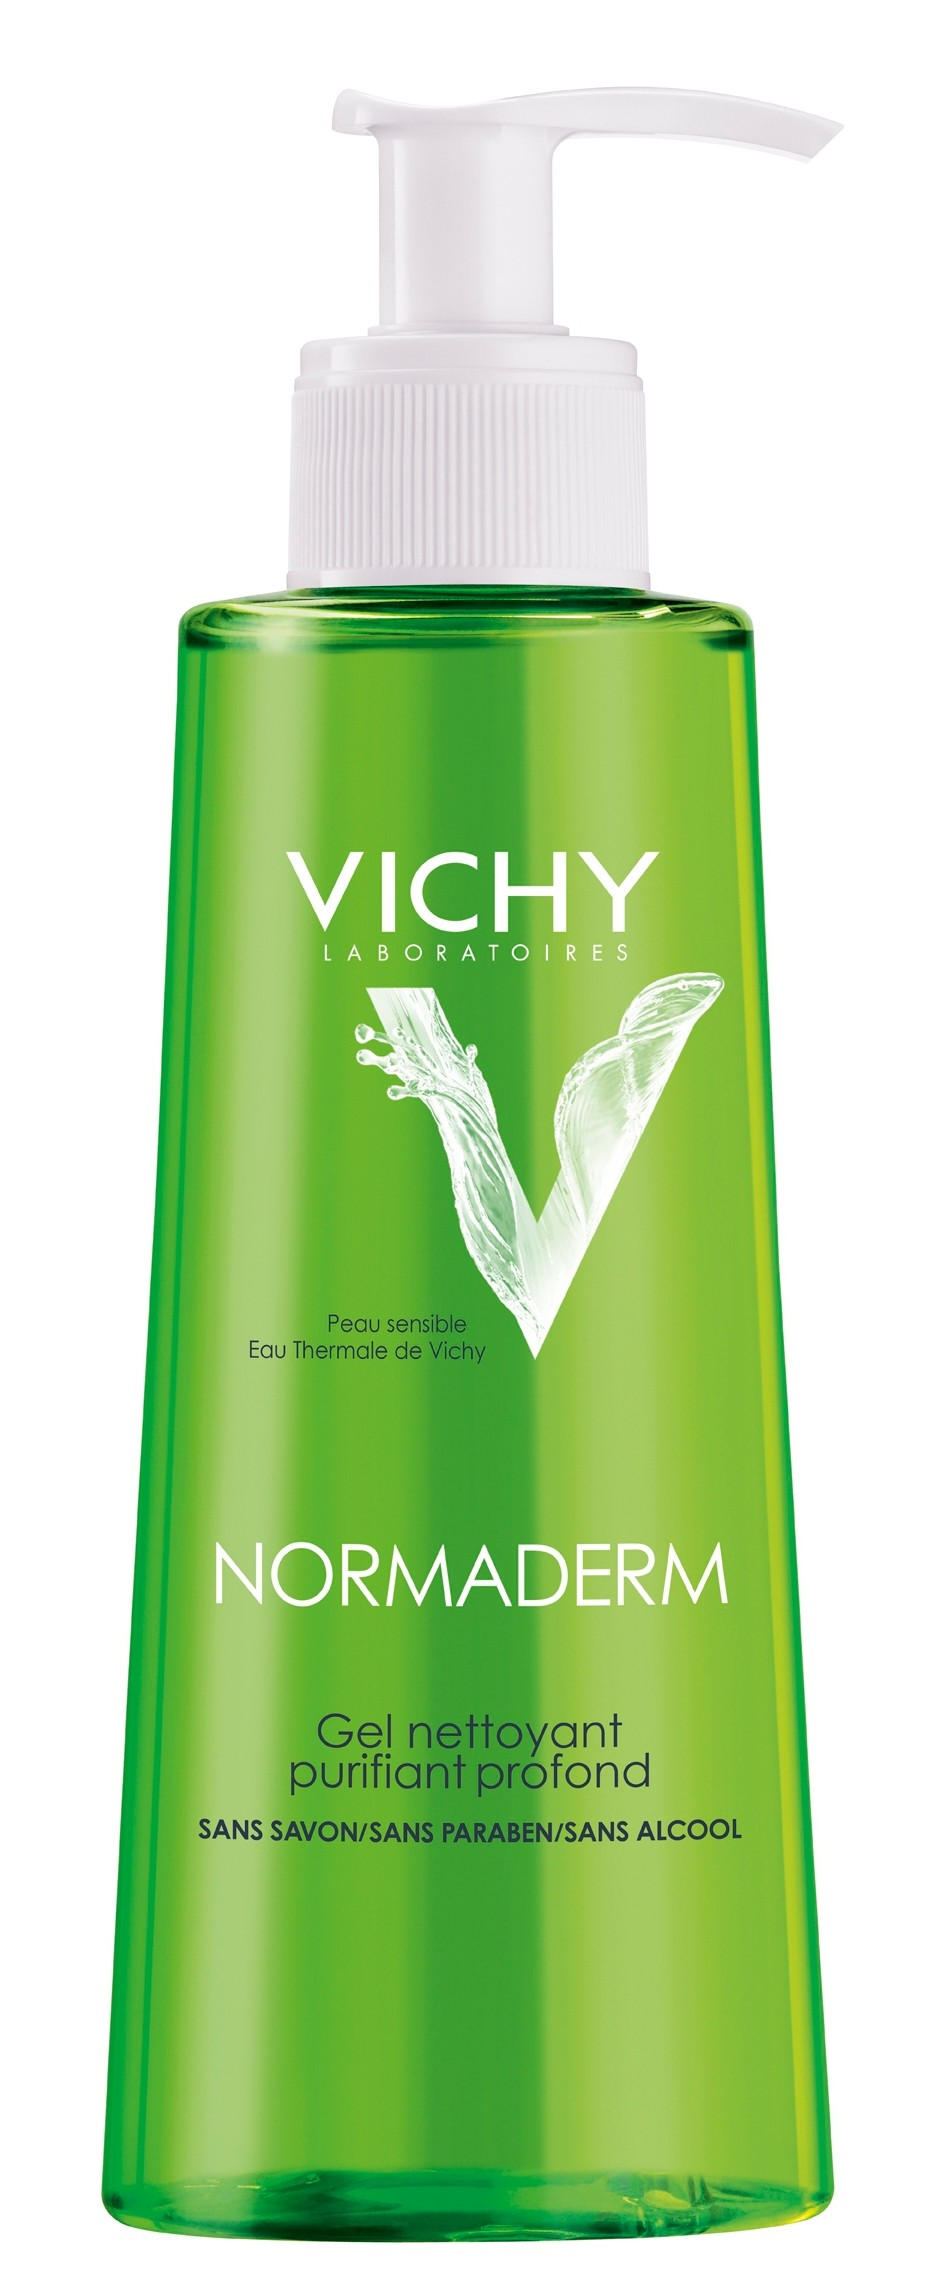 prix de vichy normaderm gel nettoyant flacon de 400ml. Black Bedroom Furniture Sets. Home Design Ideas